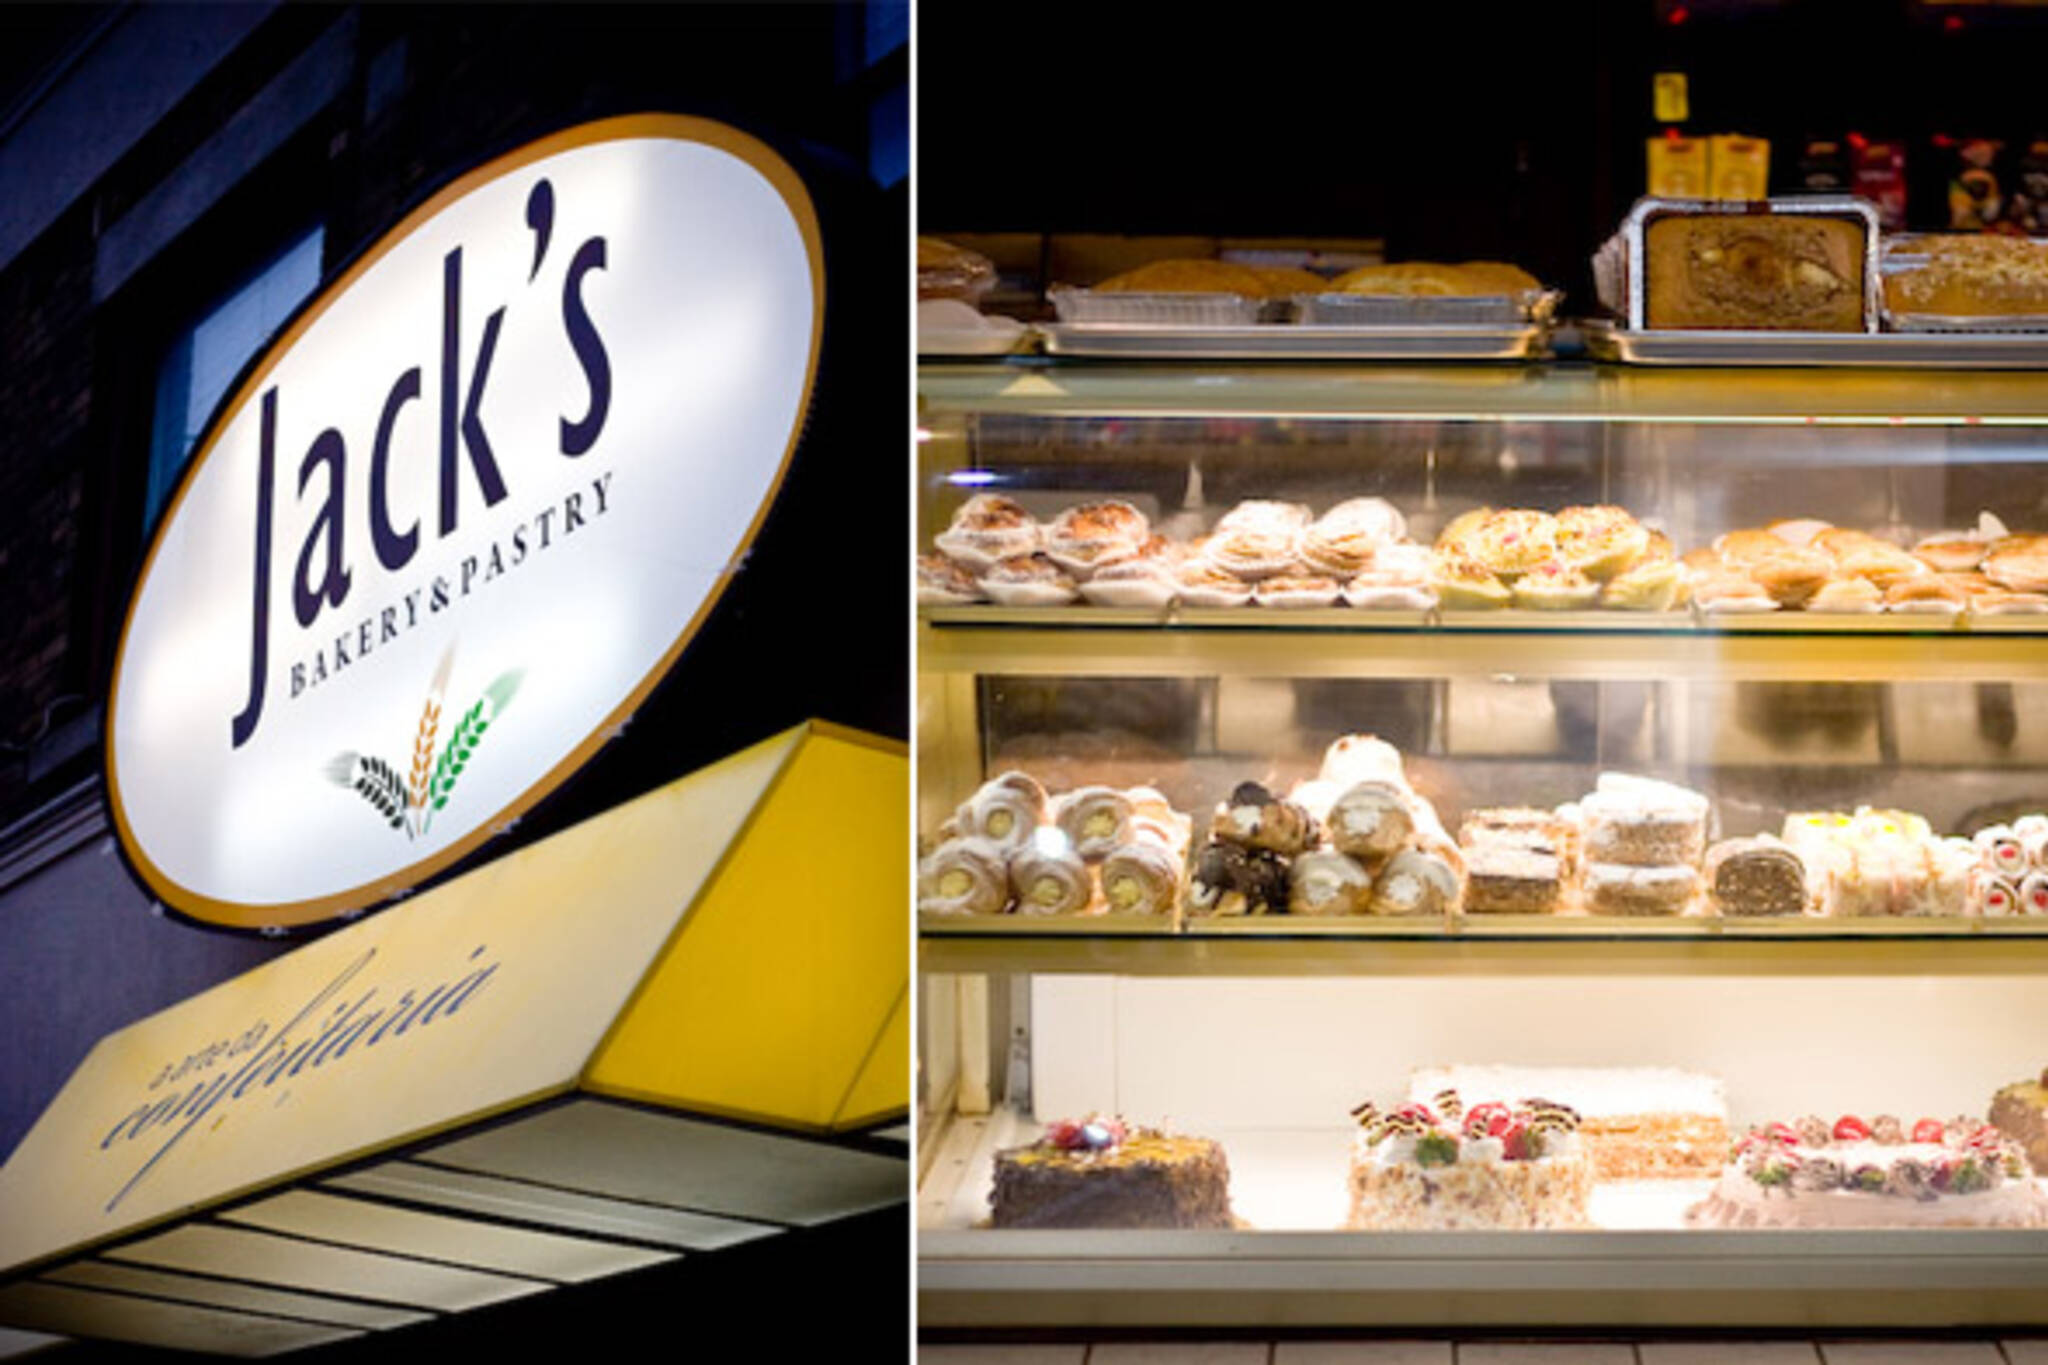 jack's bakery and pastry toronto